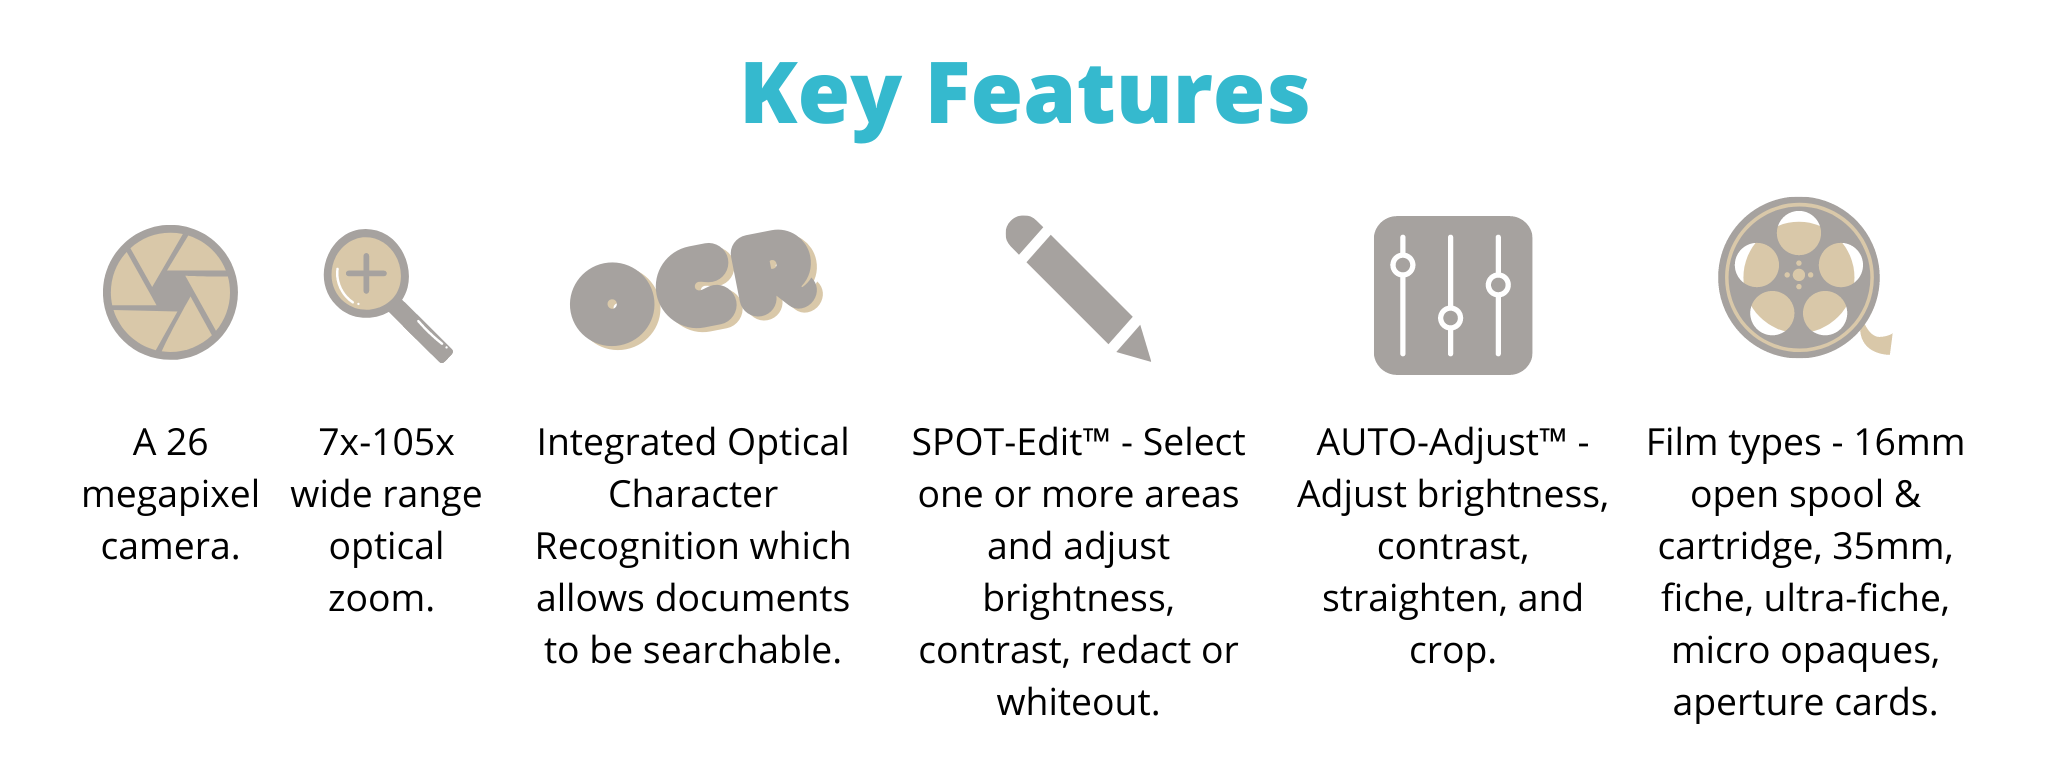 ScanPro 3000 Key Features